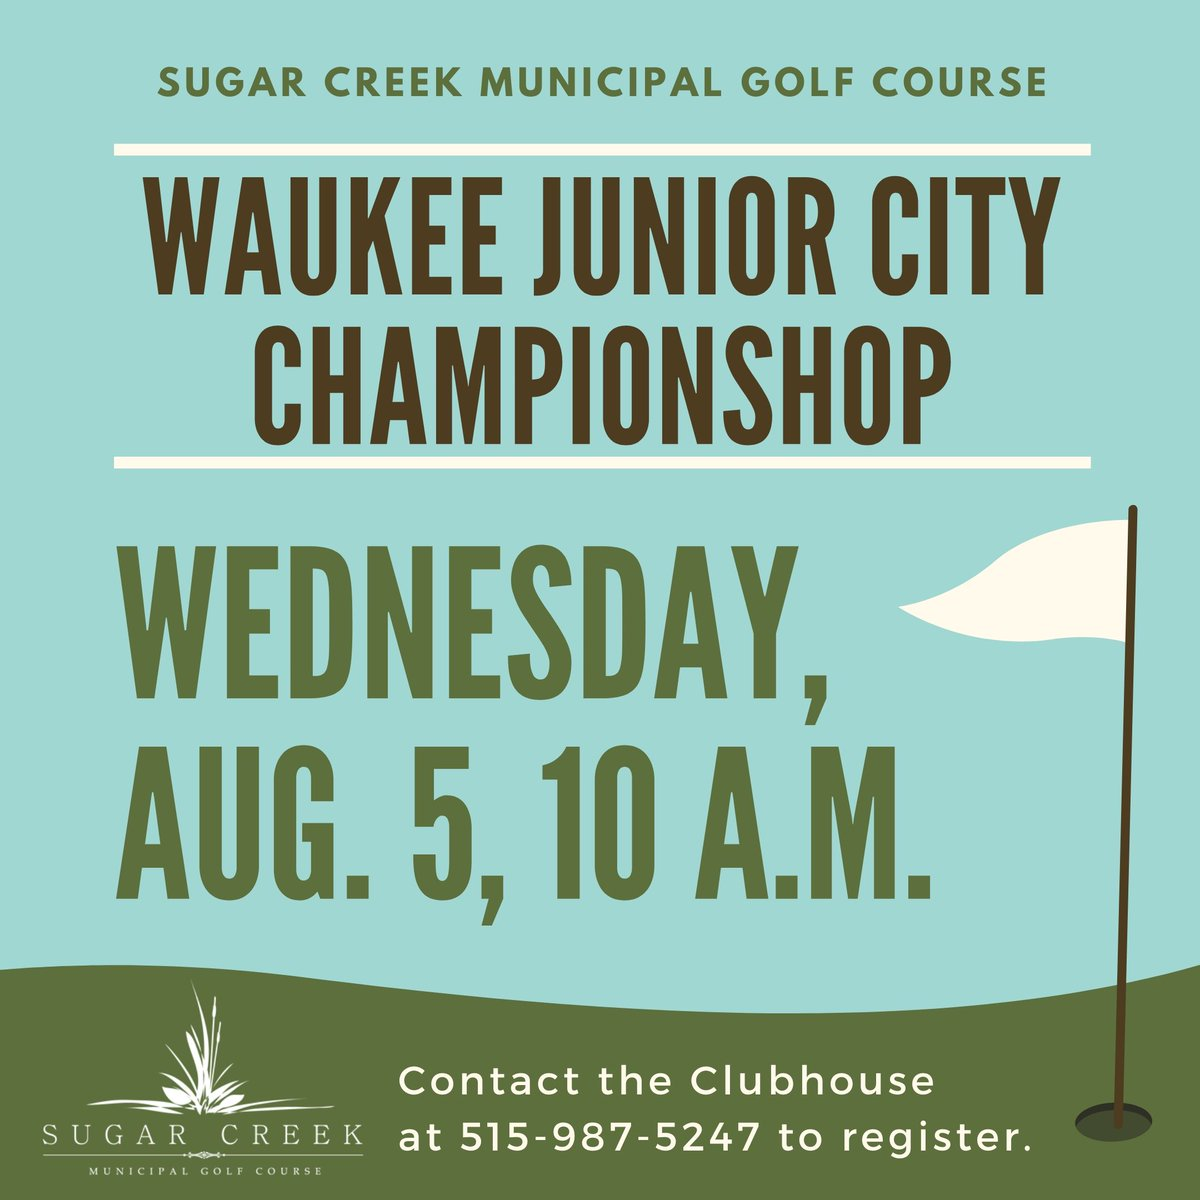 The Waukee Junior City Championship is in week! You can register for this tournament by calling the Sugar Creek Clubhouse at 515-987-5247.